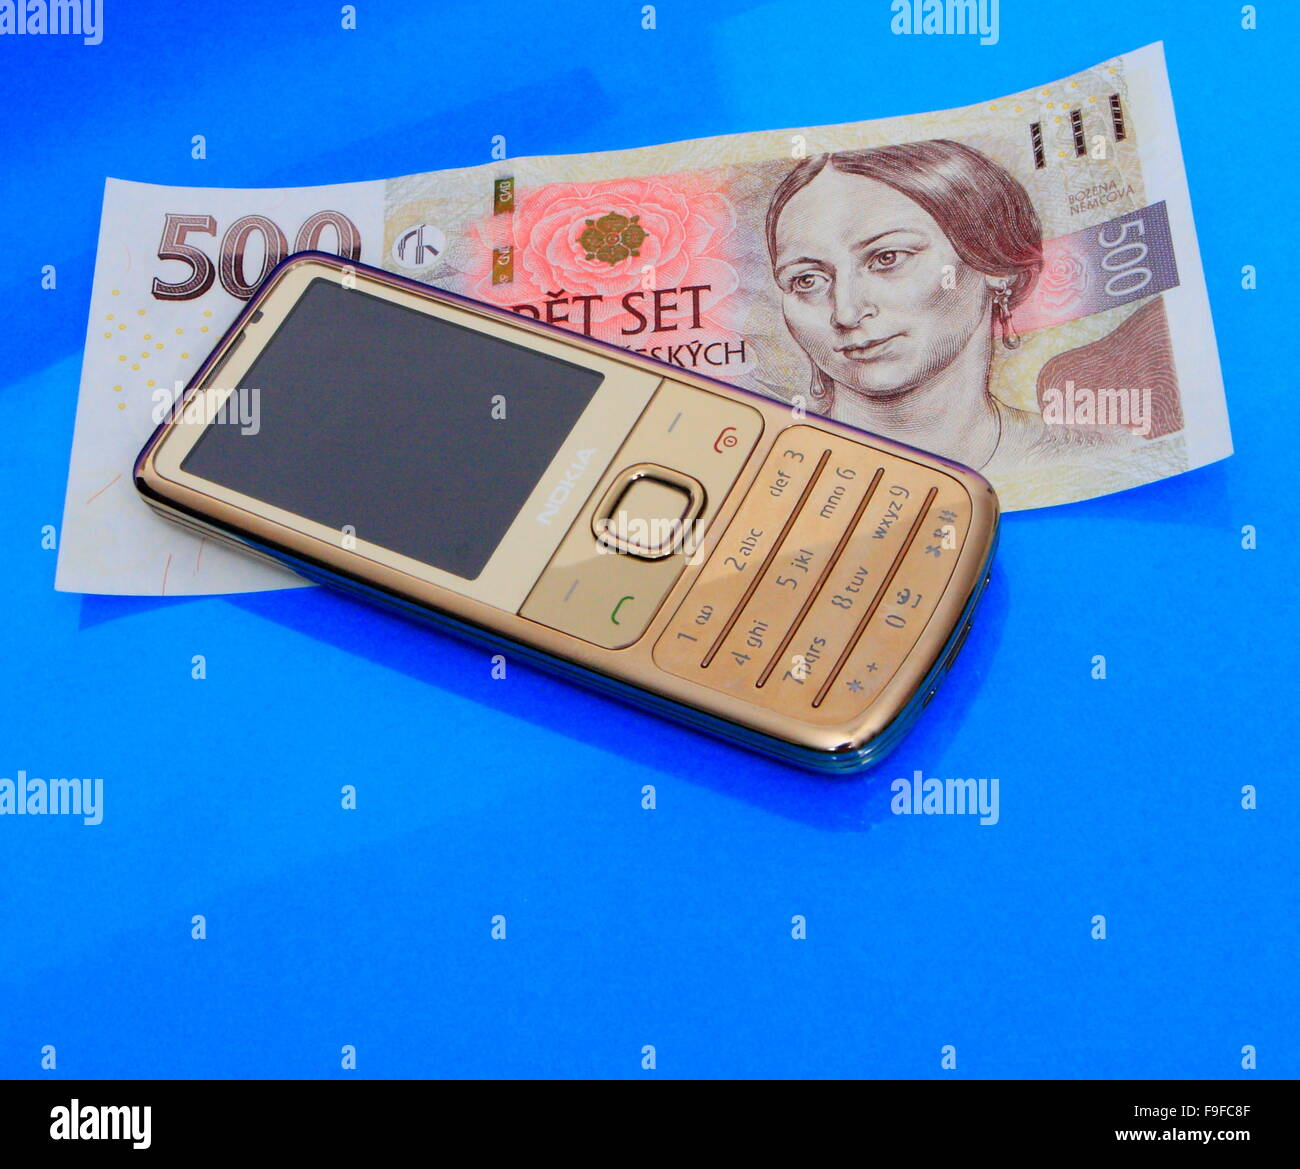 Mobile Phone Nobody Stock Photos Images Circuit Board From A Nokia 3310 Photo Picture And Money Image